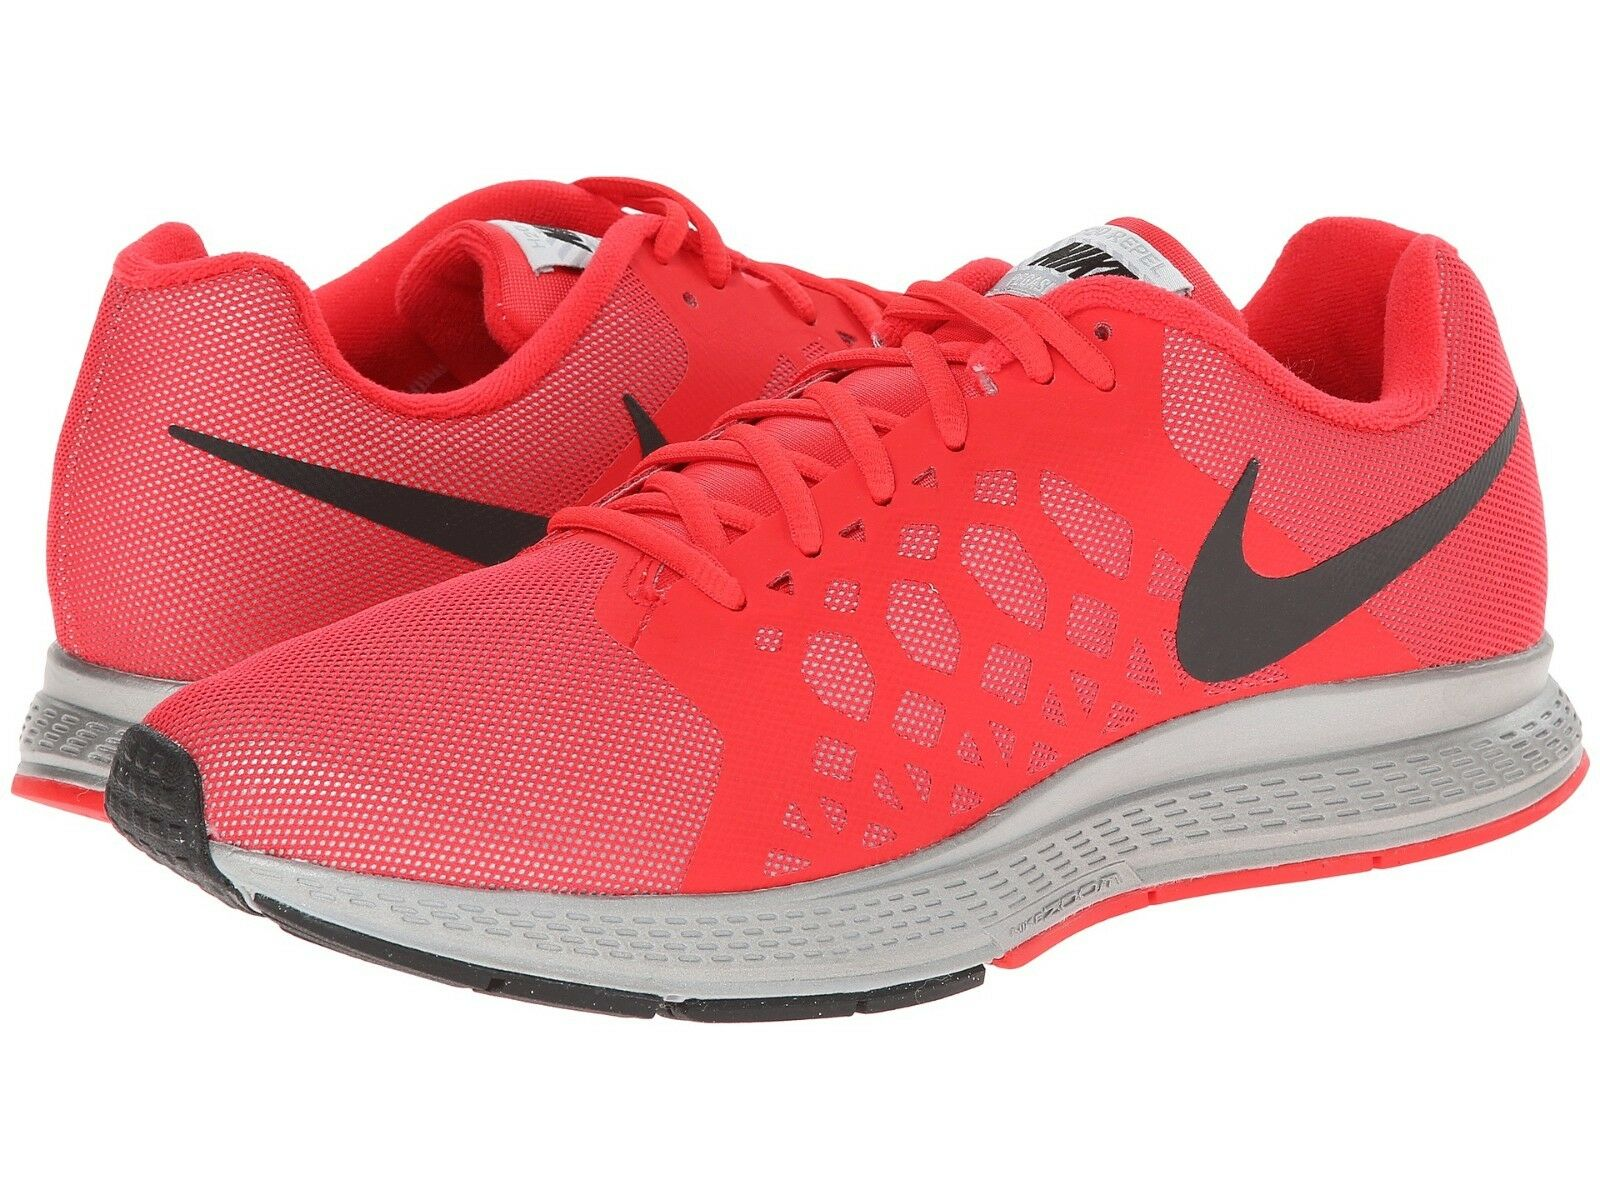 Special limited time Men's Nike Zoom Pegasus 31 Flash Running Shoes, 683676 006 Comfortable